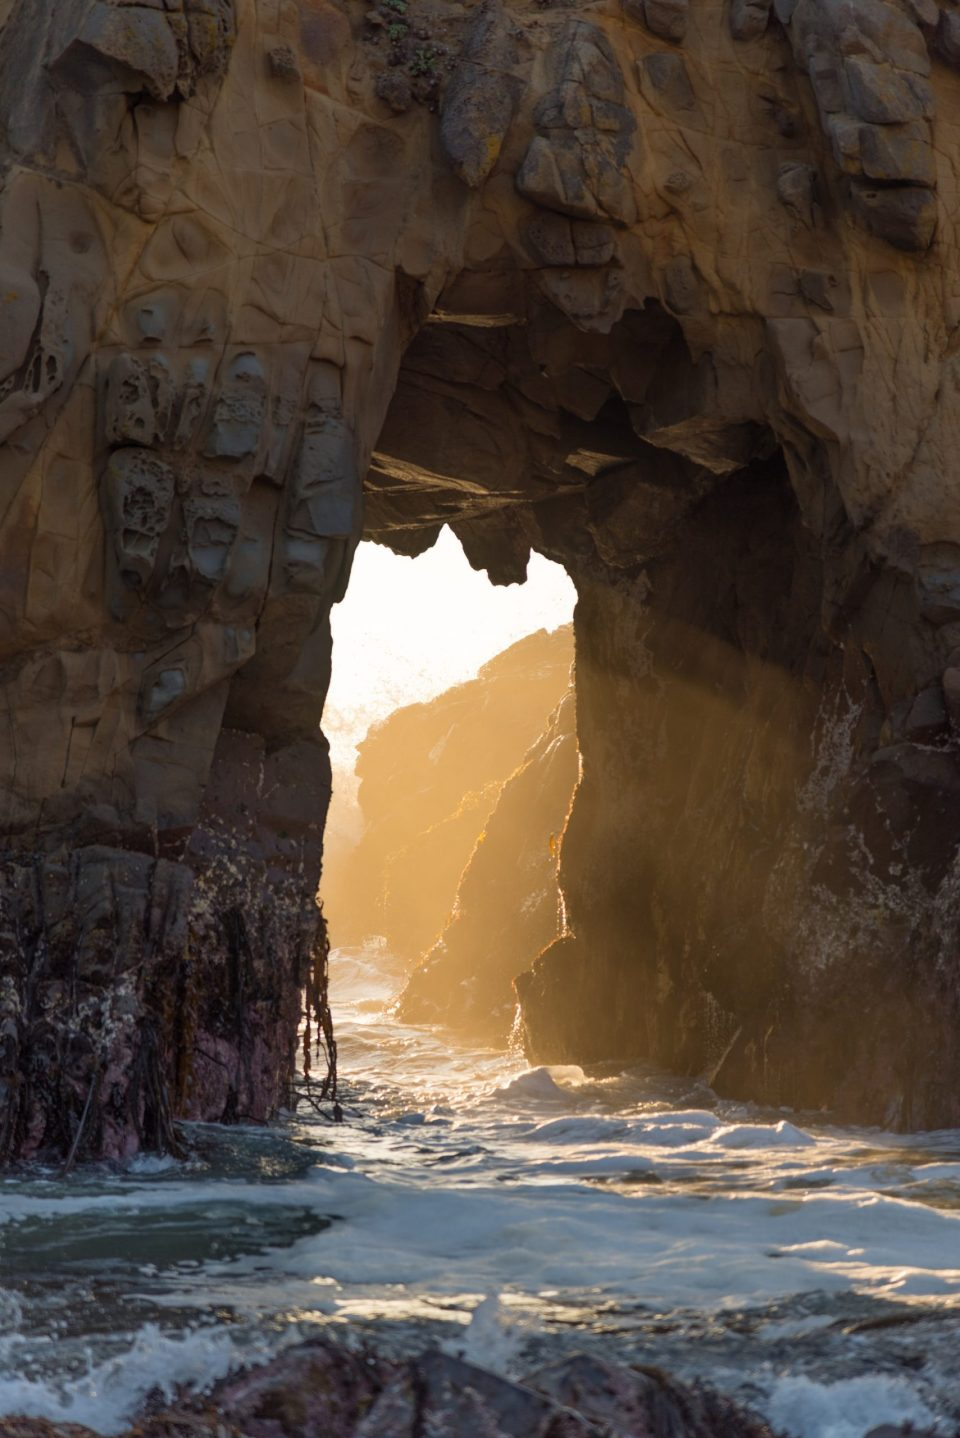 Waiting for the sun to set at Pfeiffer beach in Big Sur, the golden hour illuminated this opening and created a magical setting.